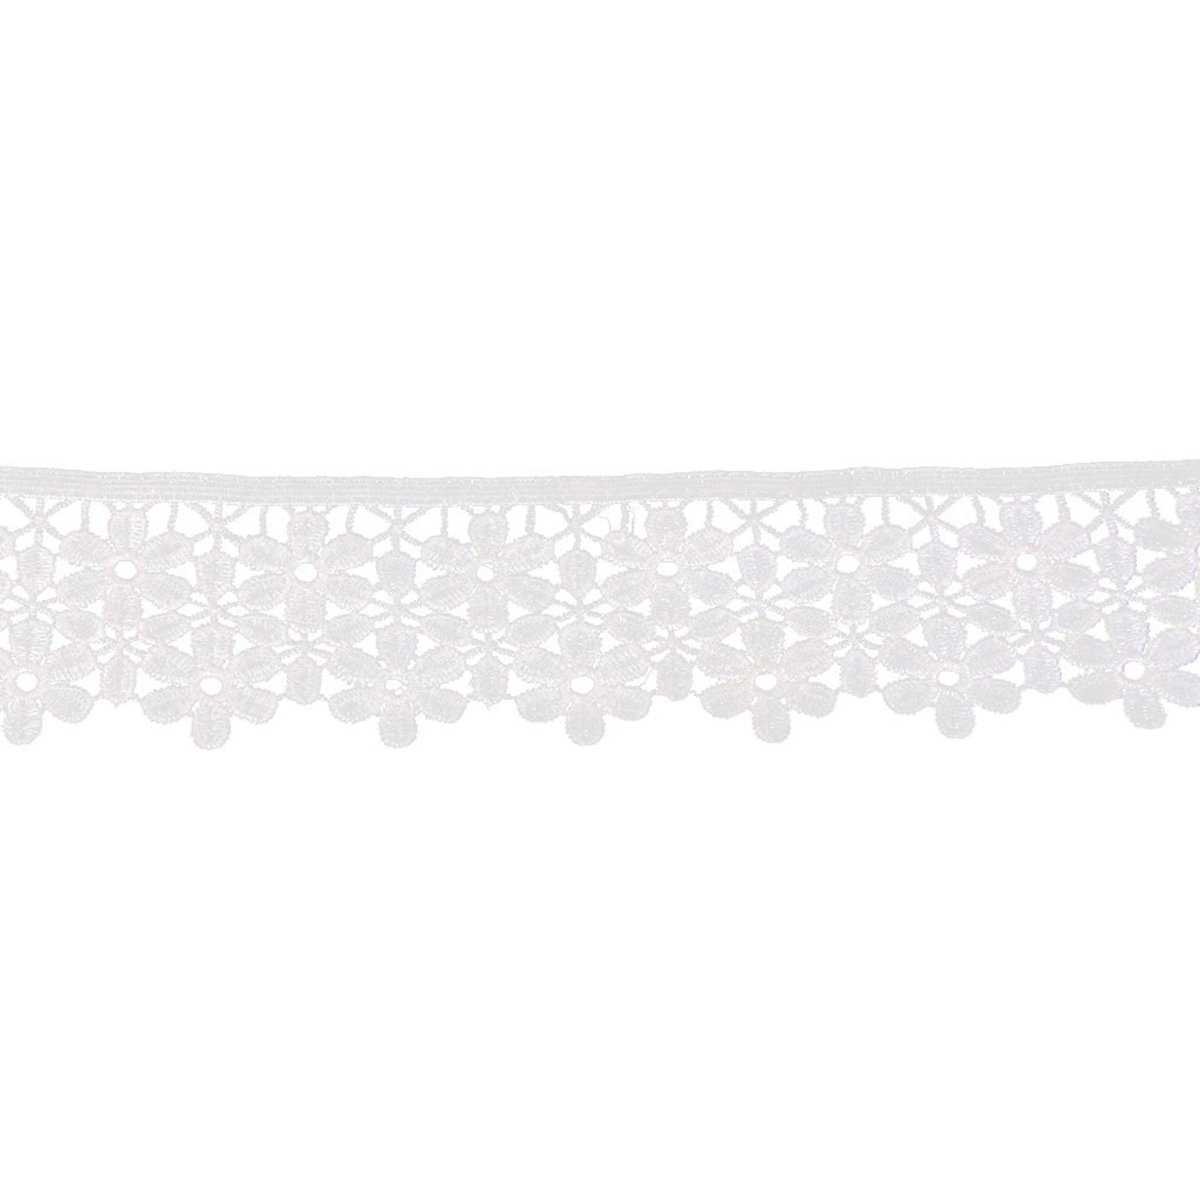 ROSENICE Lace Trim Embroidered Flower Lace Trimming Edging Trim Sewing Craft in Black,8cm 3yd